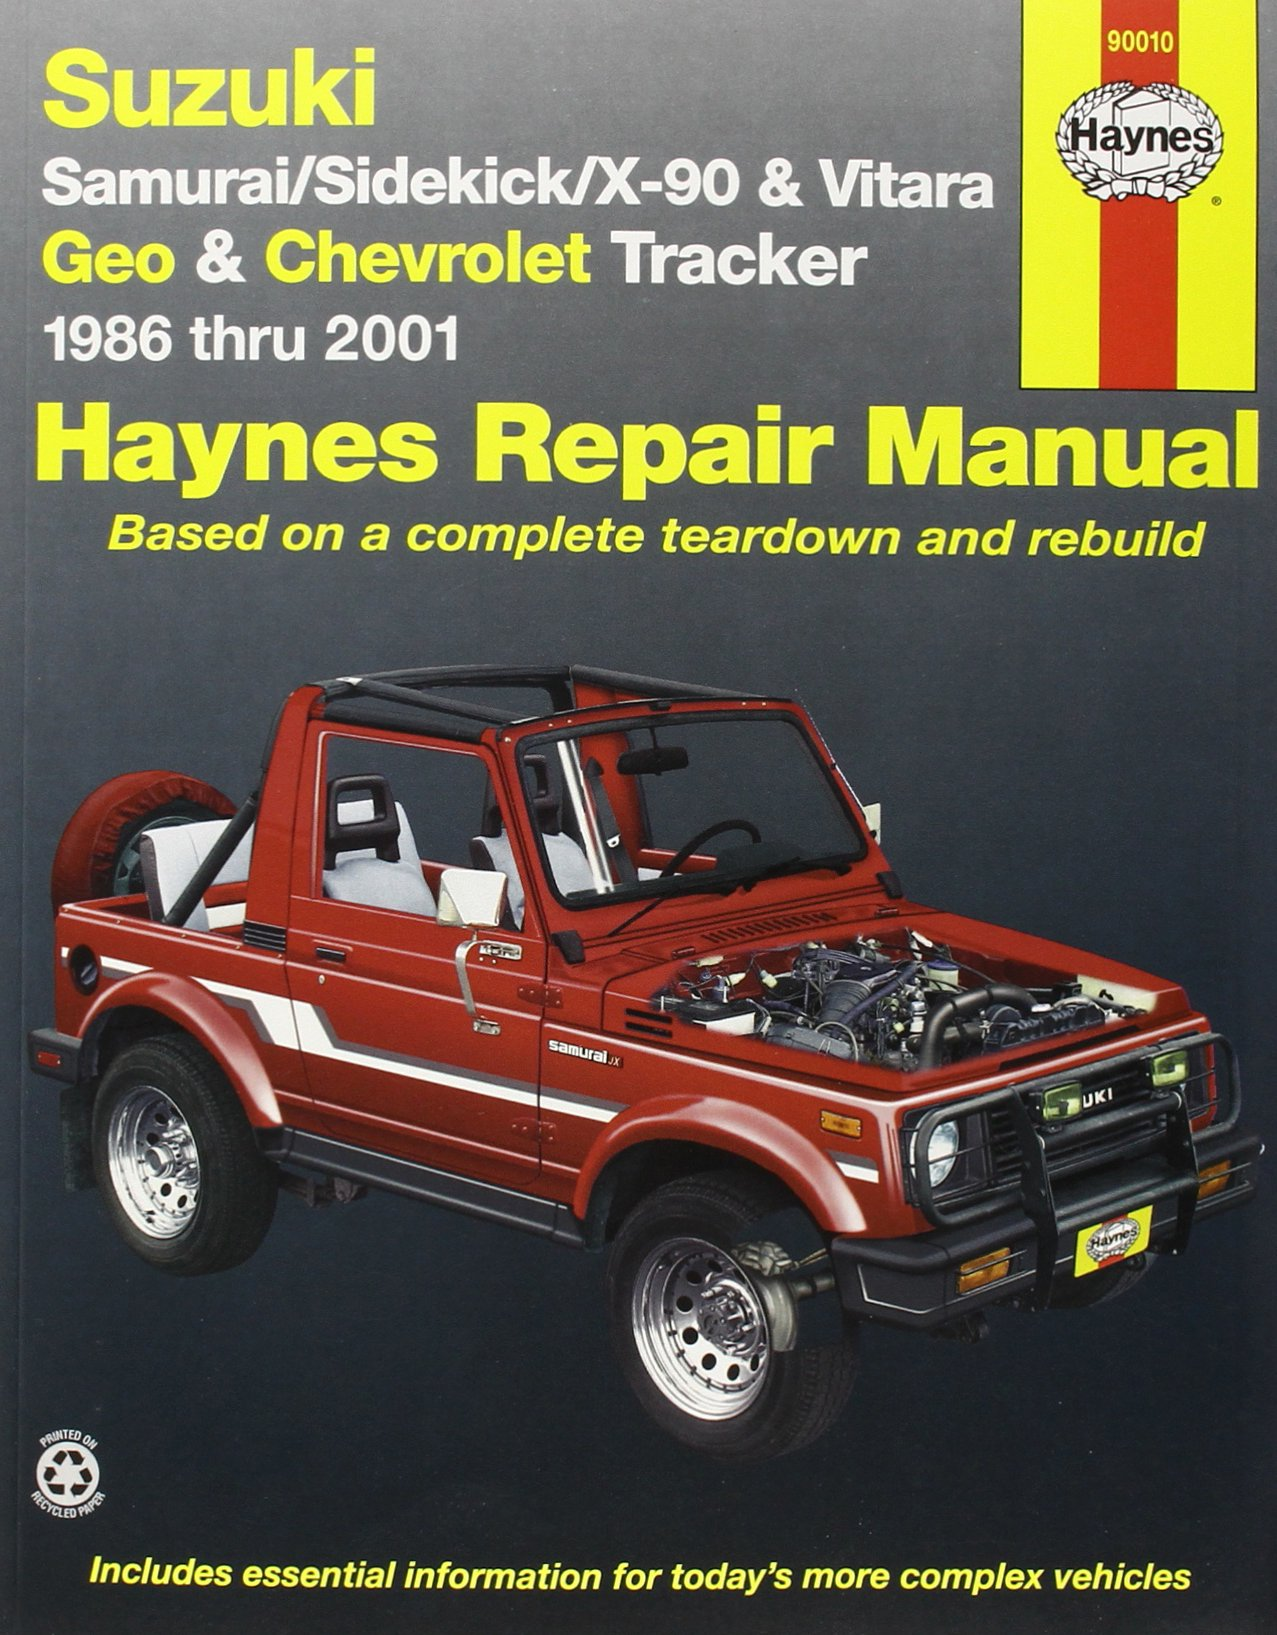 Suzuki Samurai Sidekick X 90 Geo Chevrolet Tracker 1986 Thru 96 Wiring Diagram 2001 All 4 Cylinder Models Haynes Manuals John Books